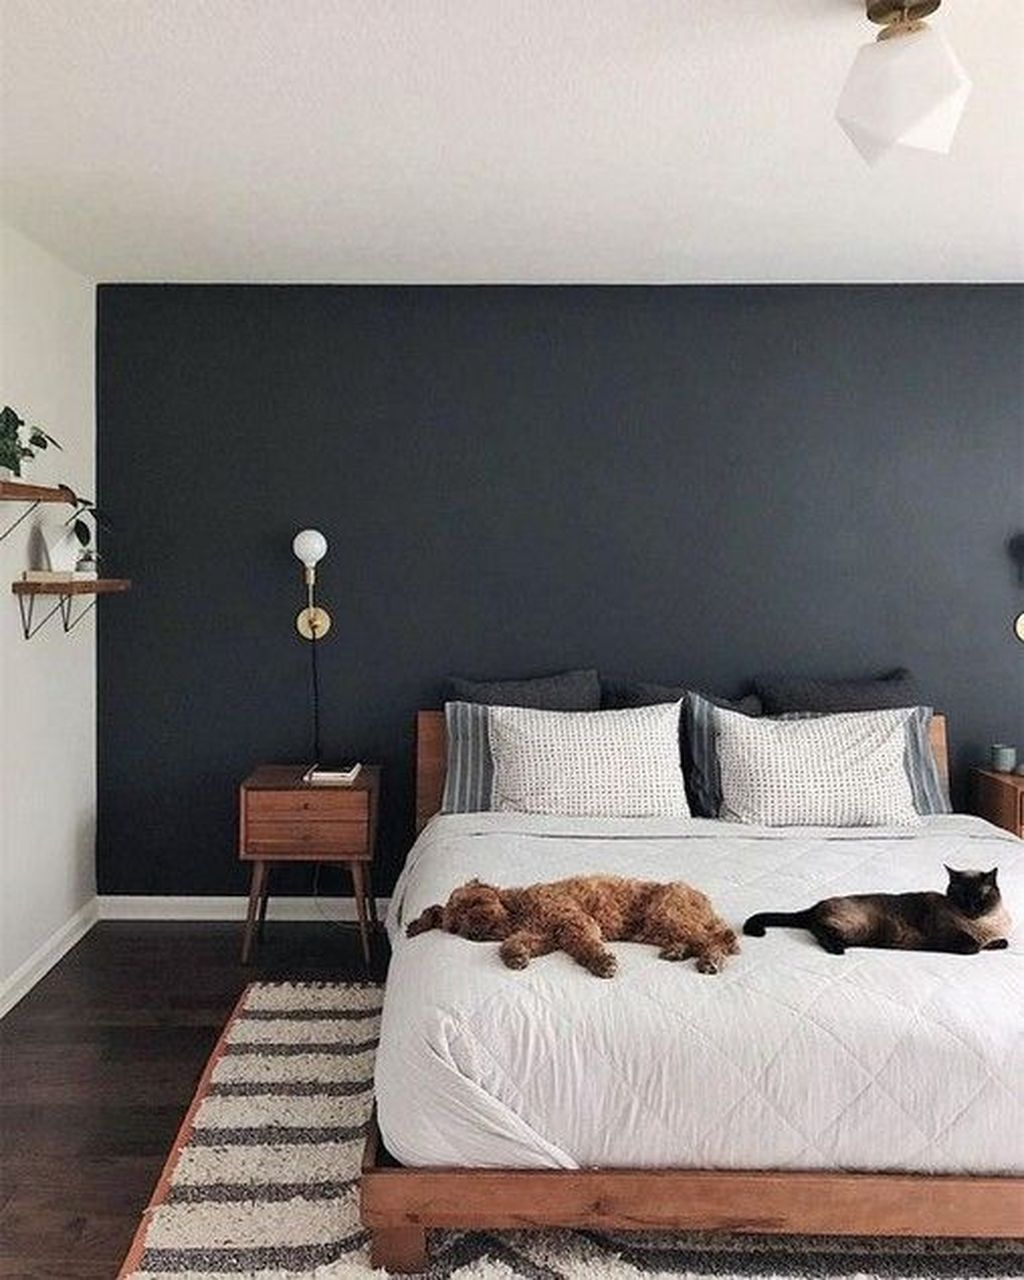 46 Awesome Minimalist Bedroom Design And Decor Ideas Homyhomee In 2020 Home Decor Bedroom Minimalist Bedroom Design Small Bedroom Decor